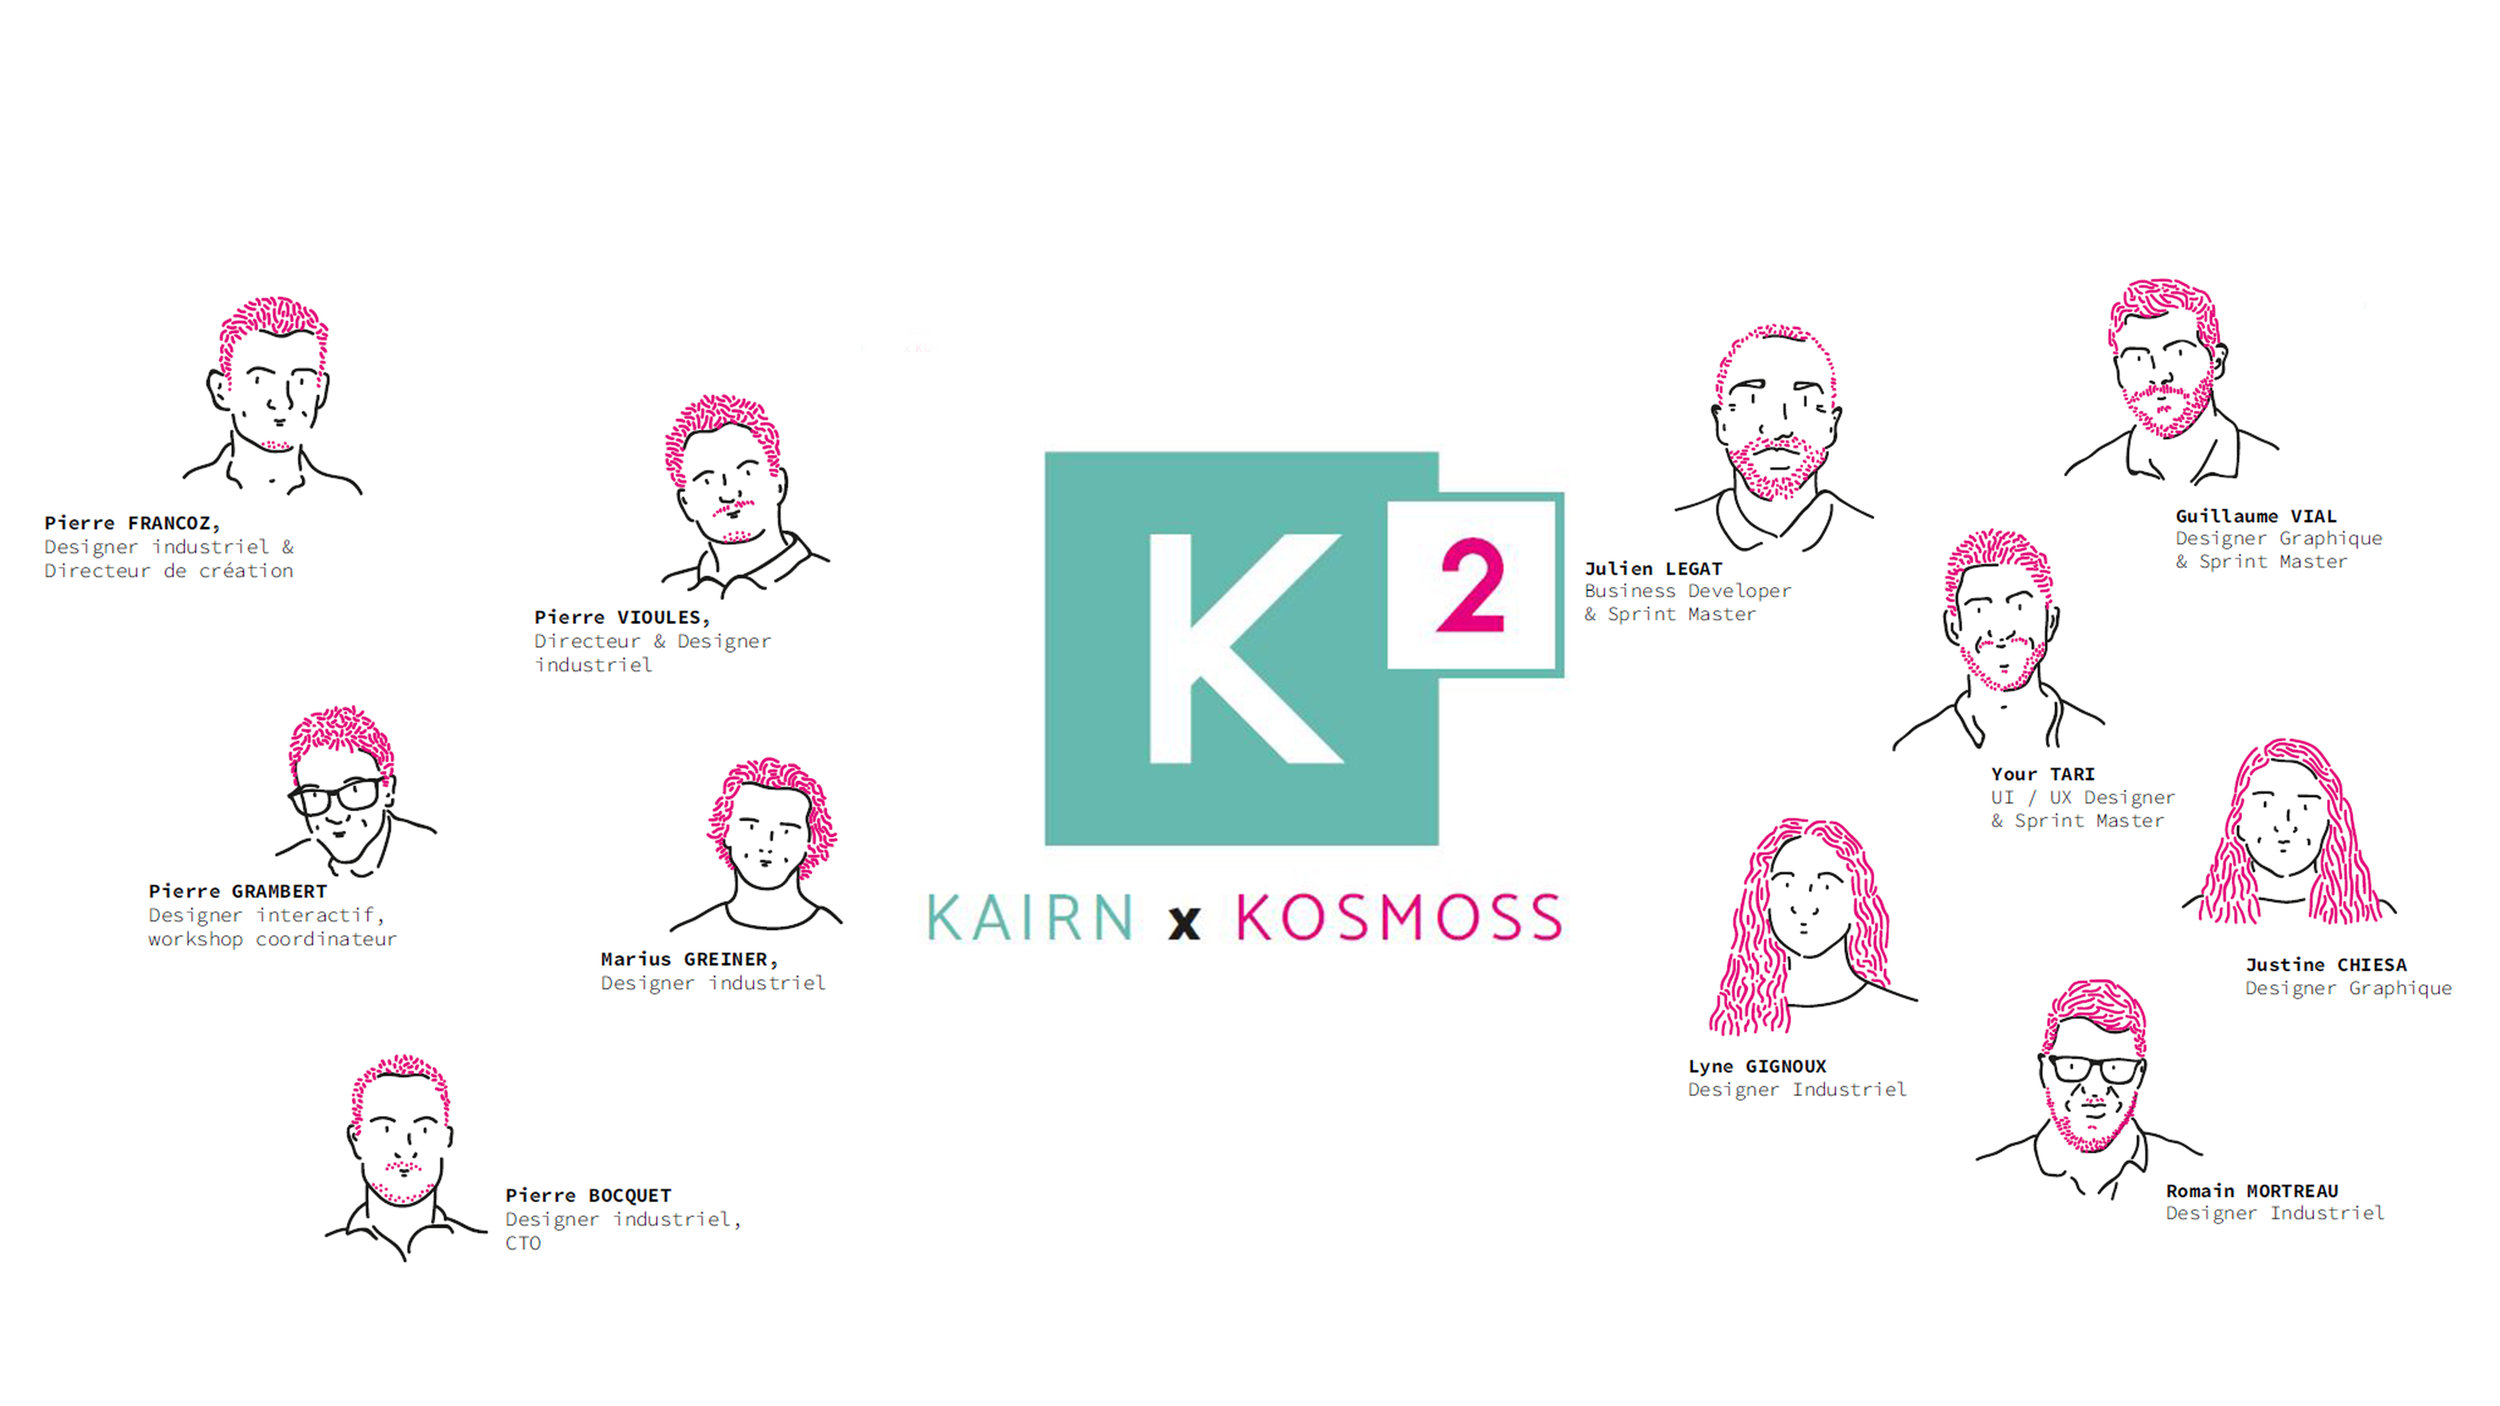 0.DESIGN SPRINT - Proven and accelerated design process in 5 days, in collaboration with Julien Legat, Sprint Master, and his team of groundbreakers from Groupe Kosmoss.5 days co-creation process